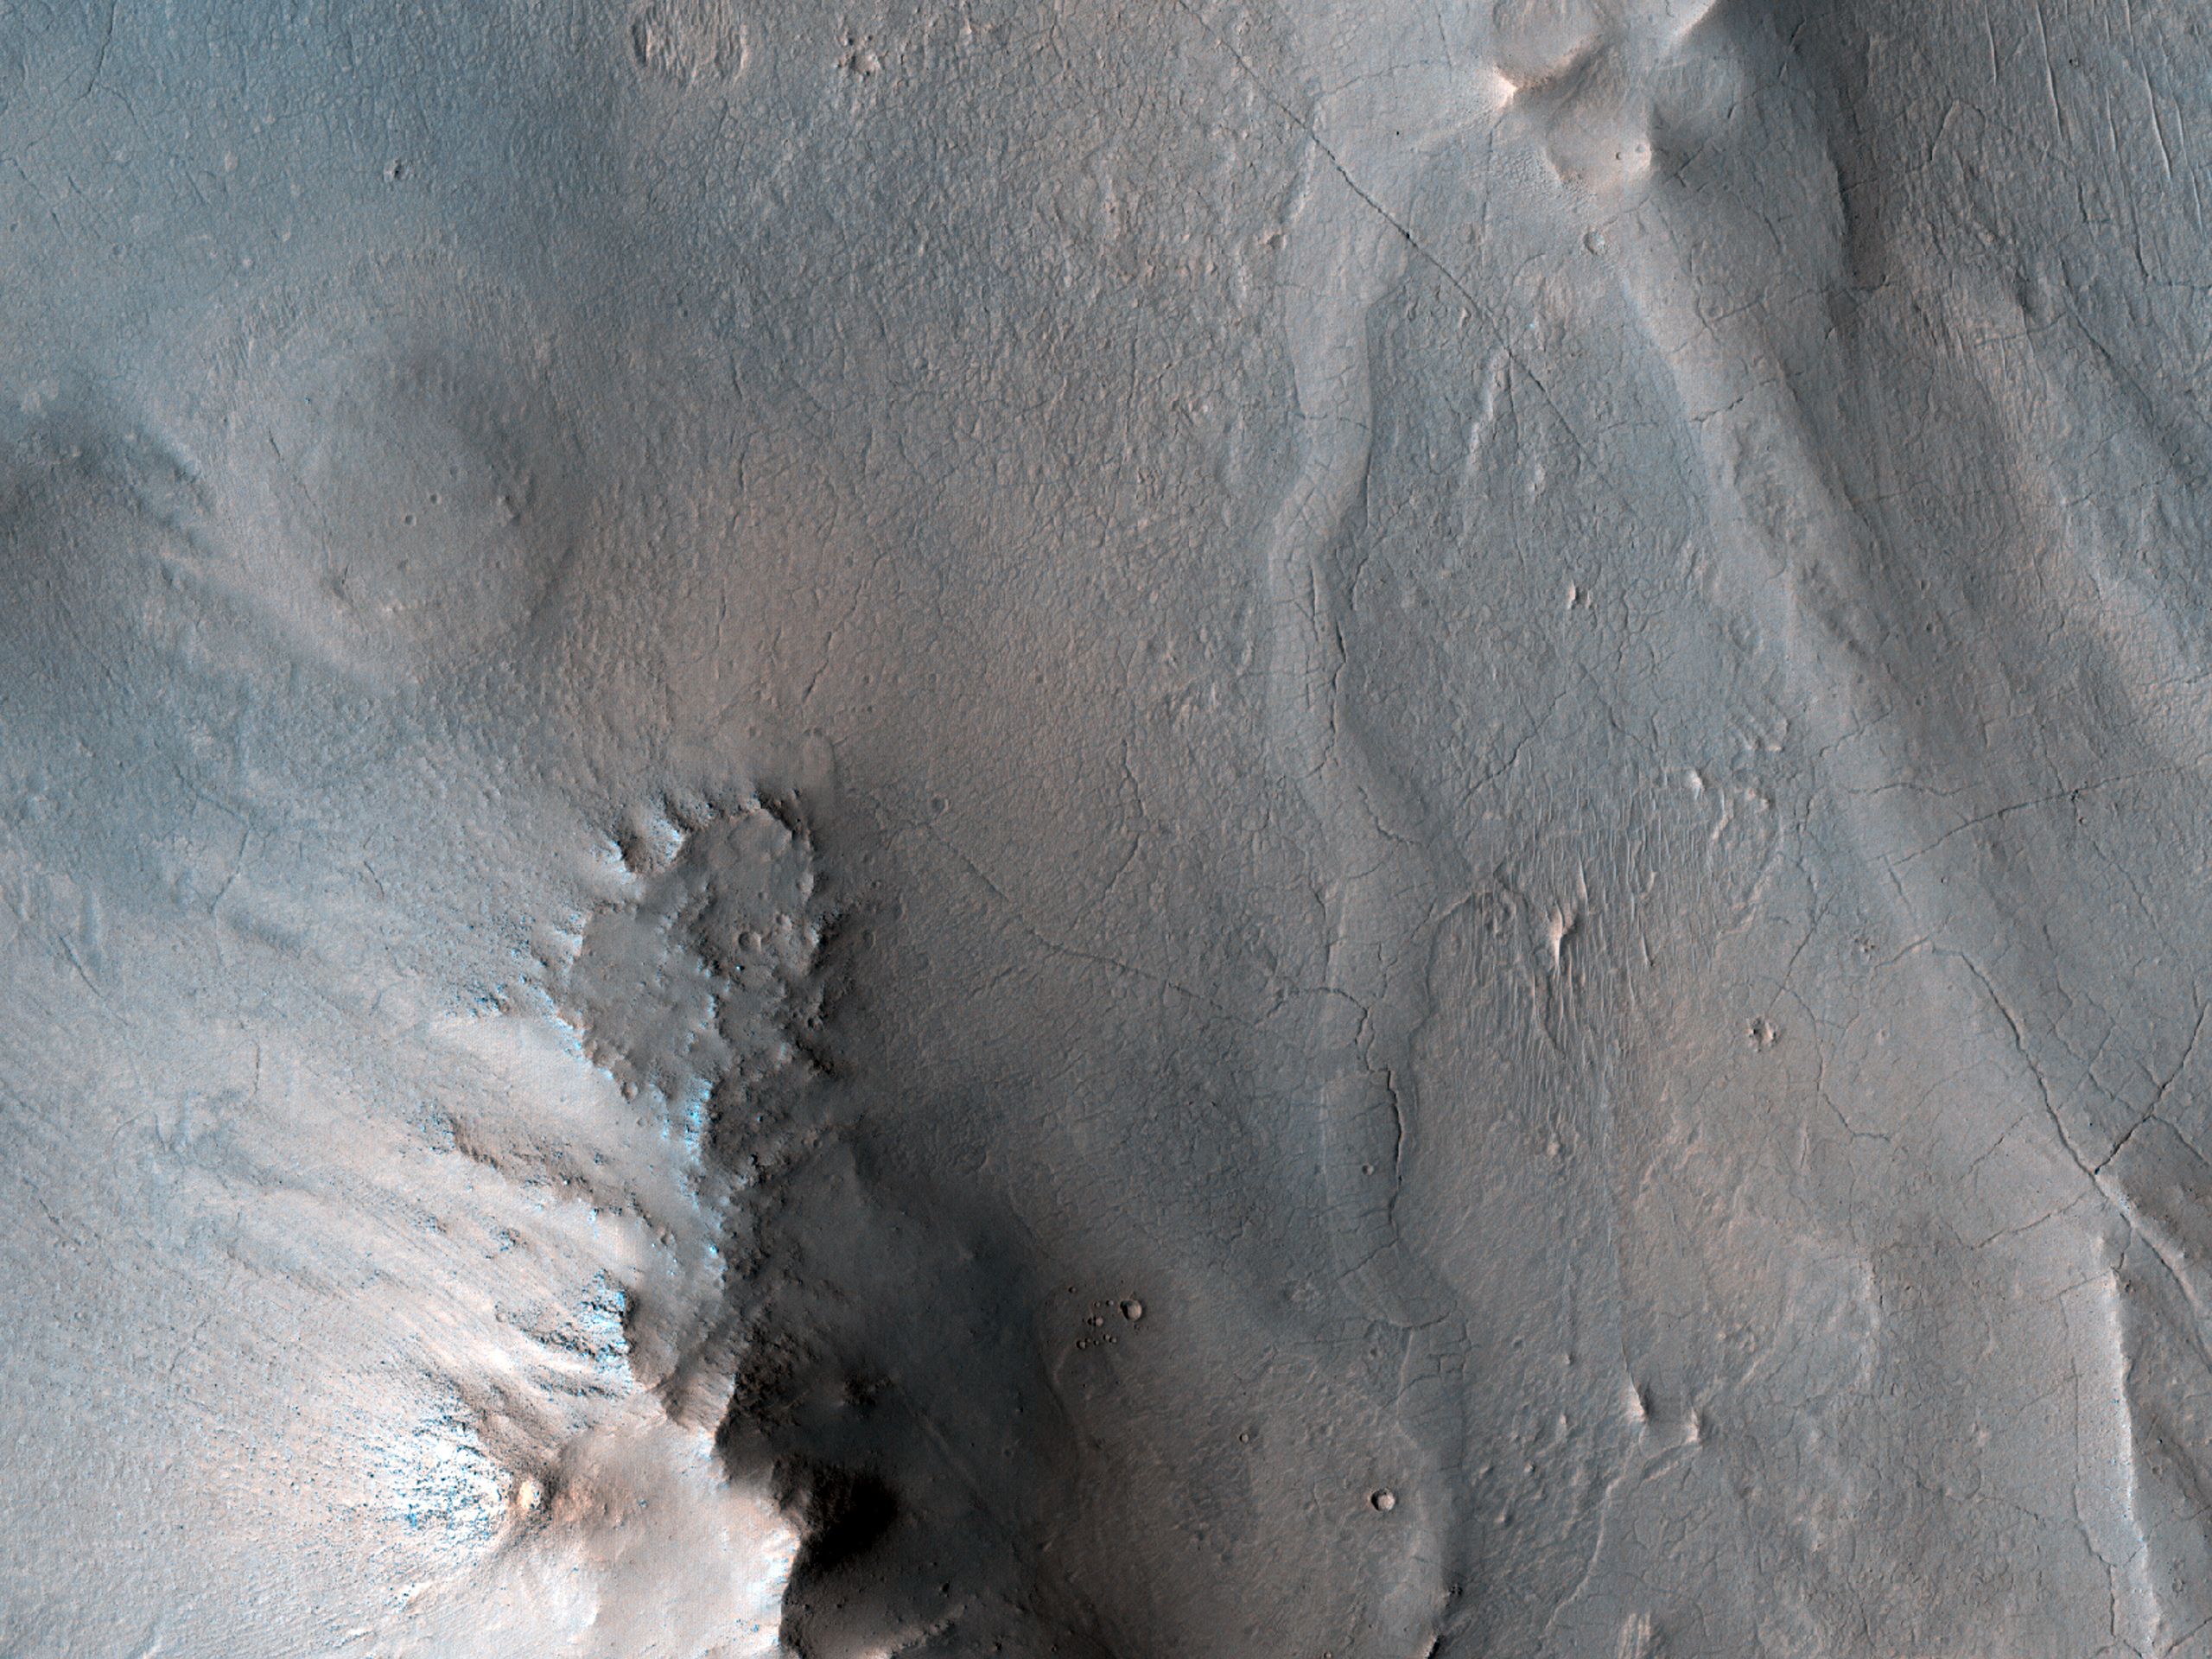 Branched Sinuous Ridges on Wall in Crater within Antoniadi Crater